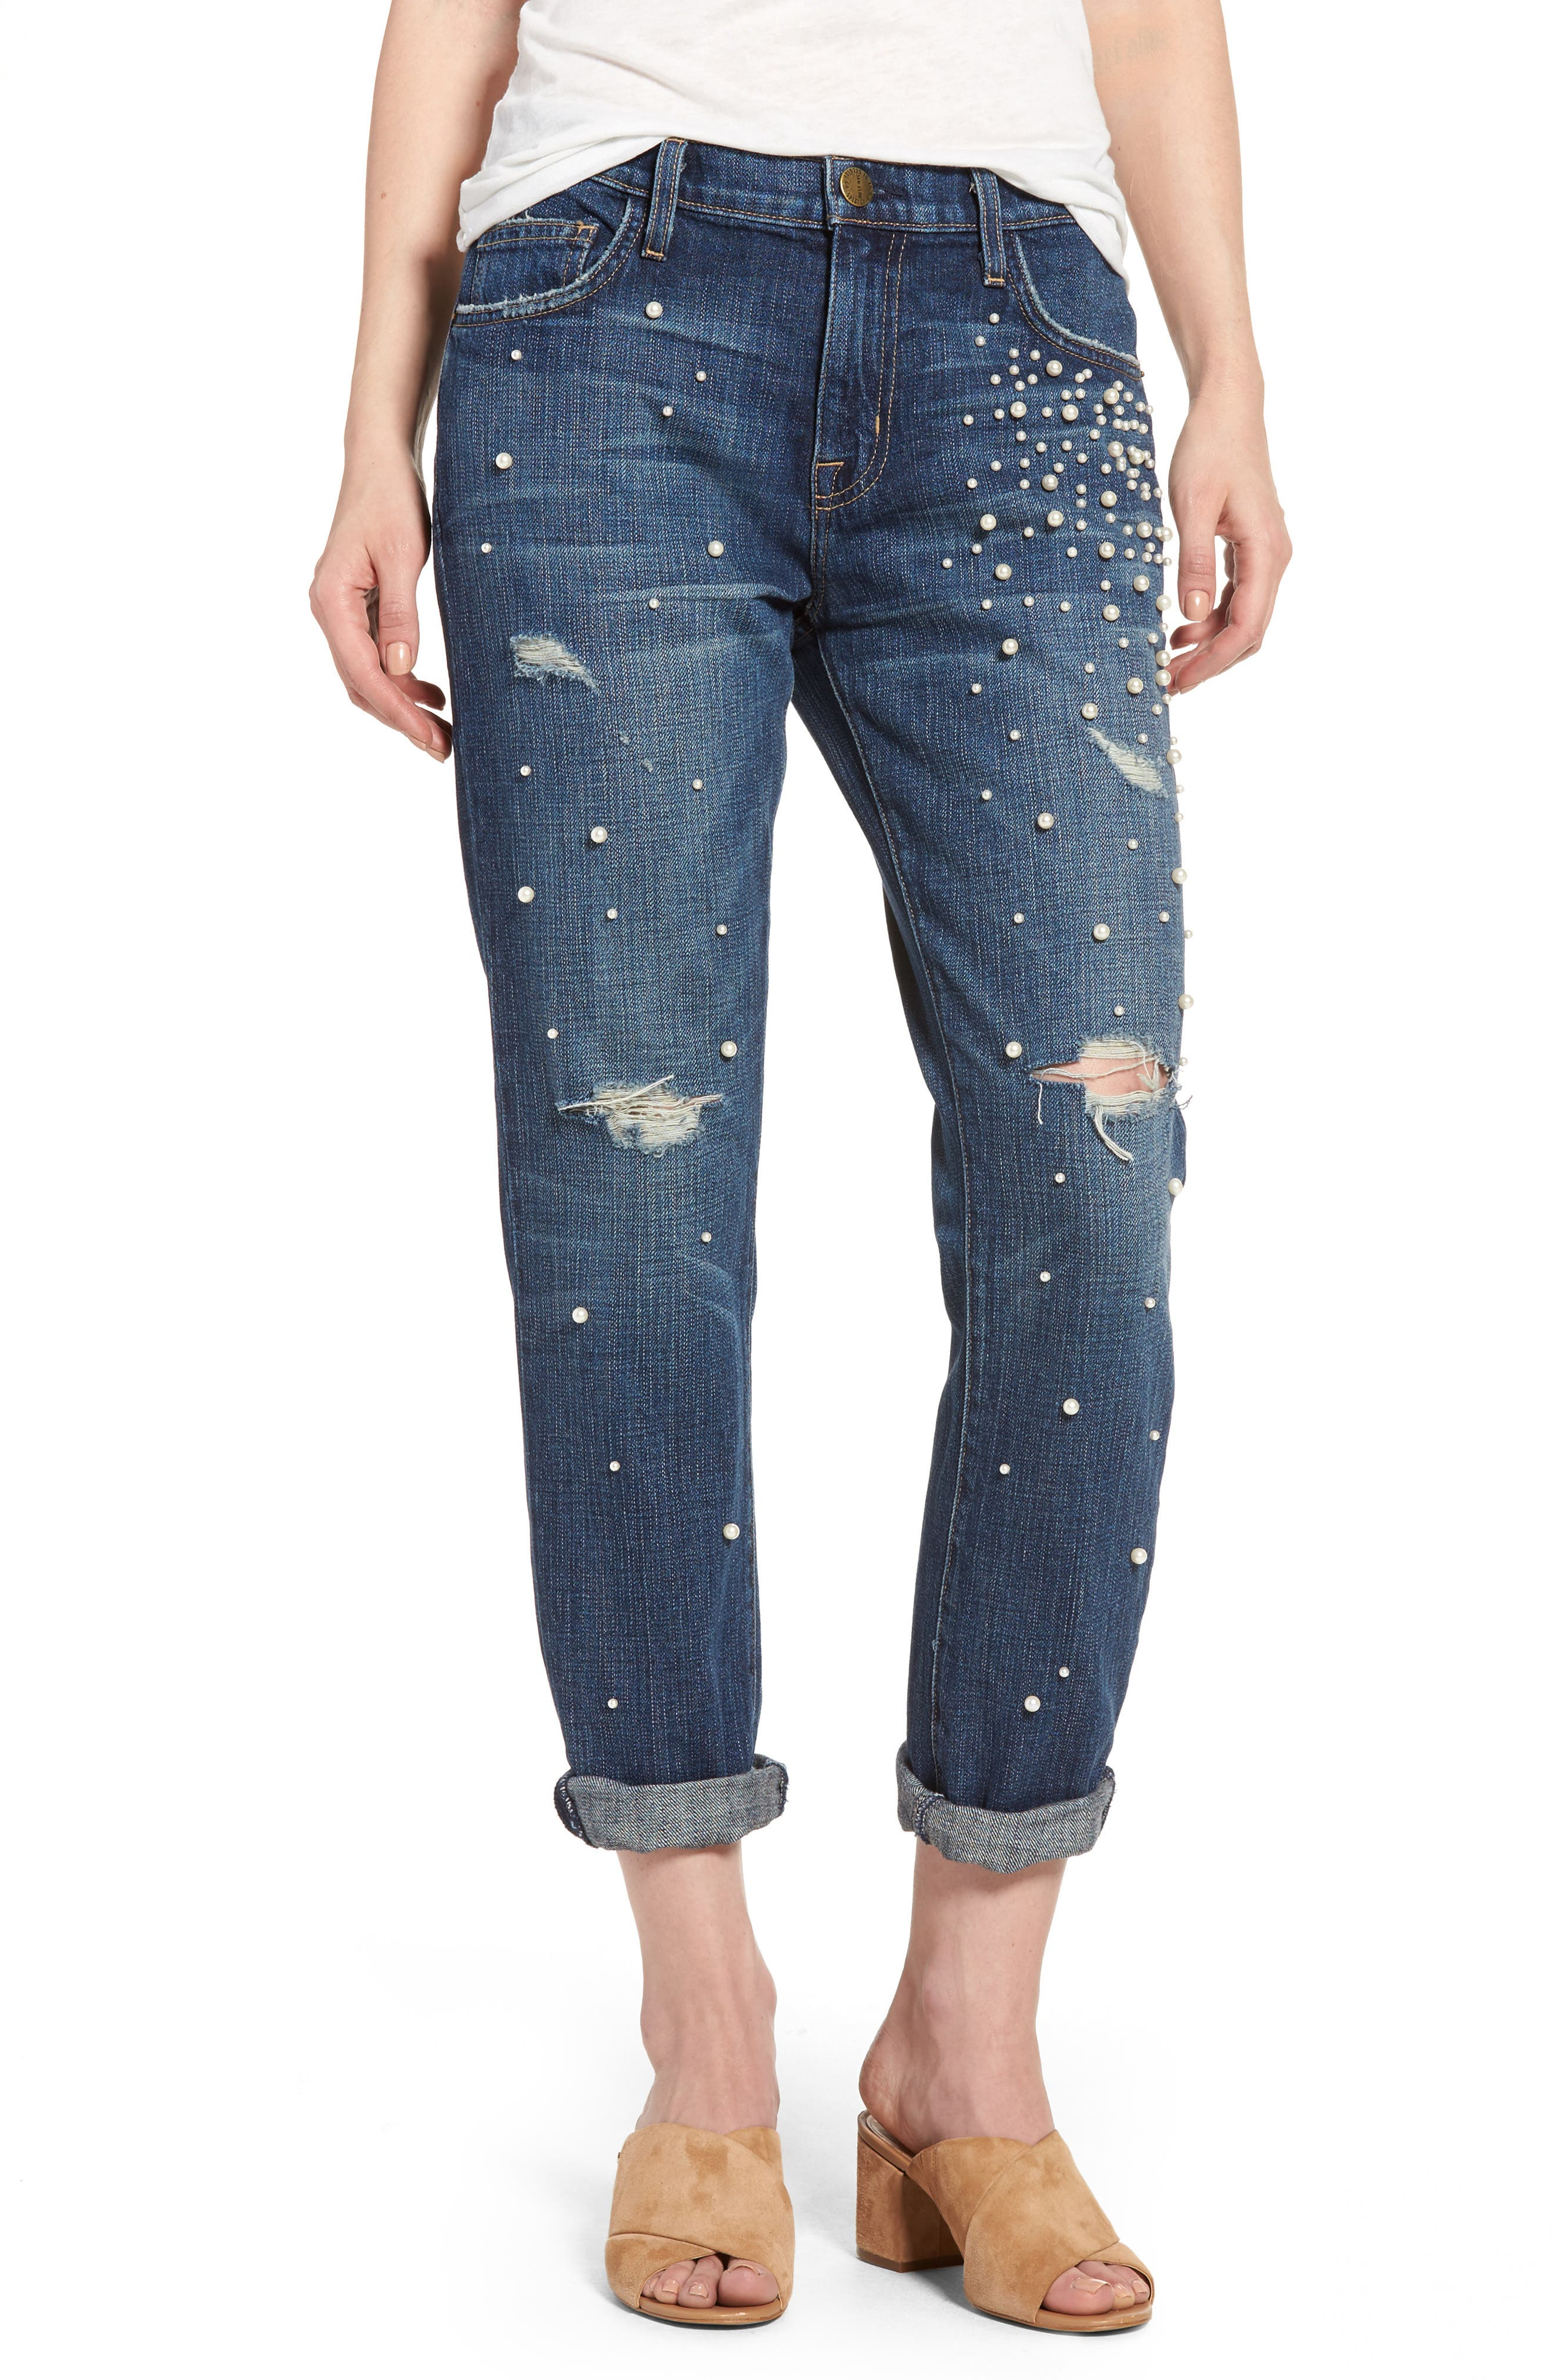 'The Fling' Boyfriend Jeans,                         Main,                         color, Washed Loved Destroy/ Pearls